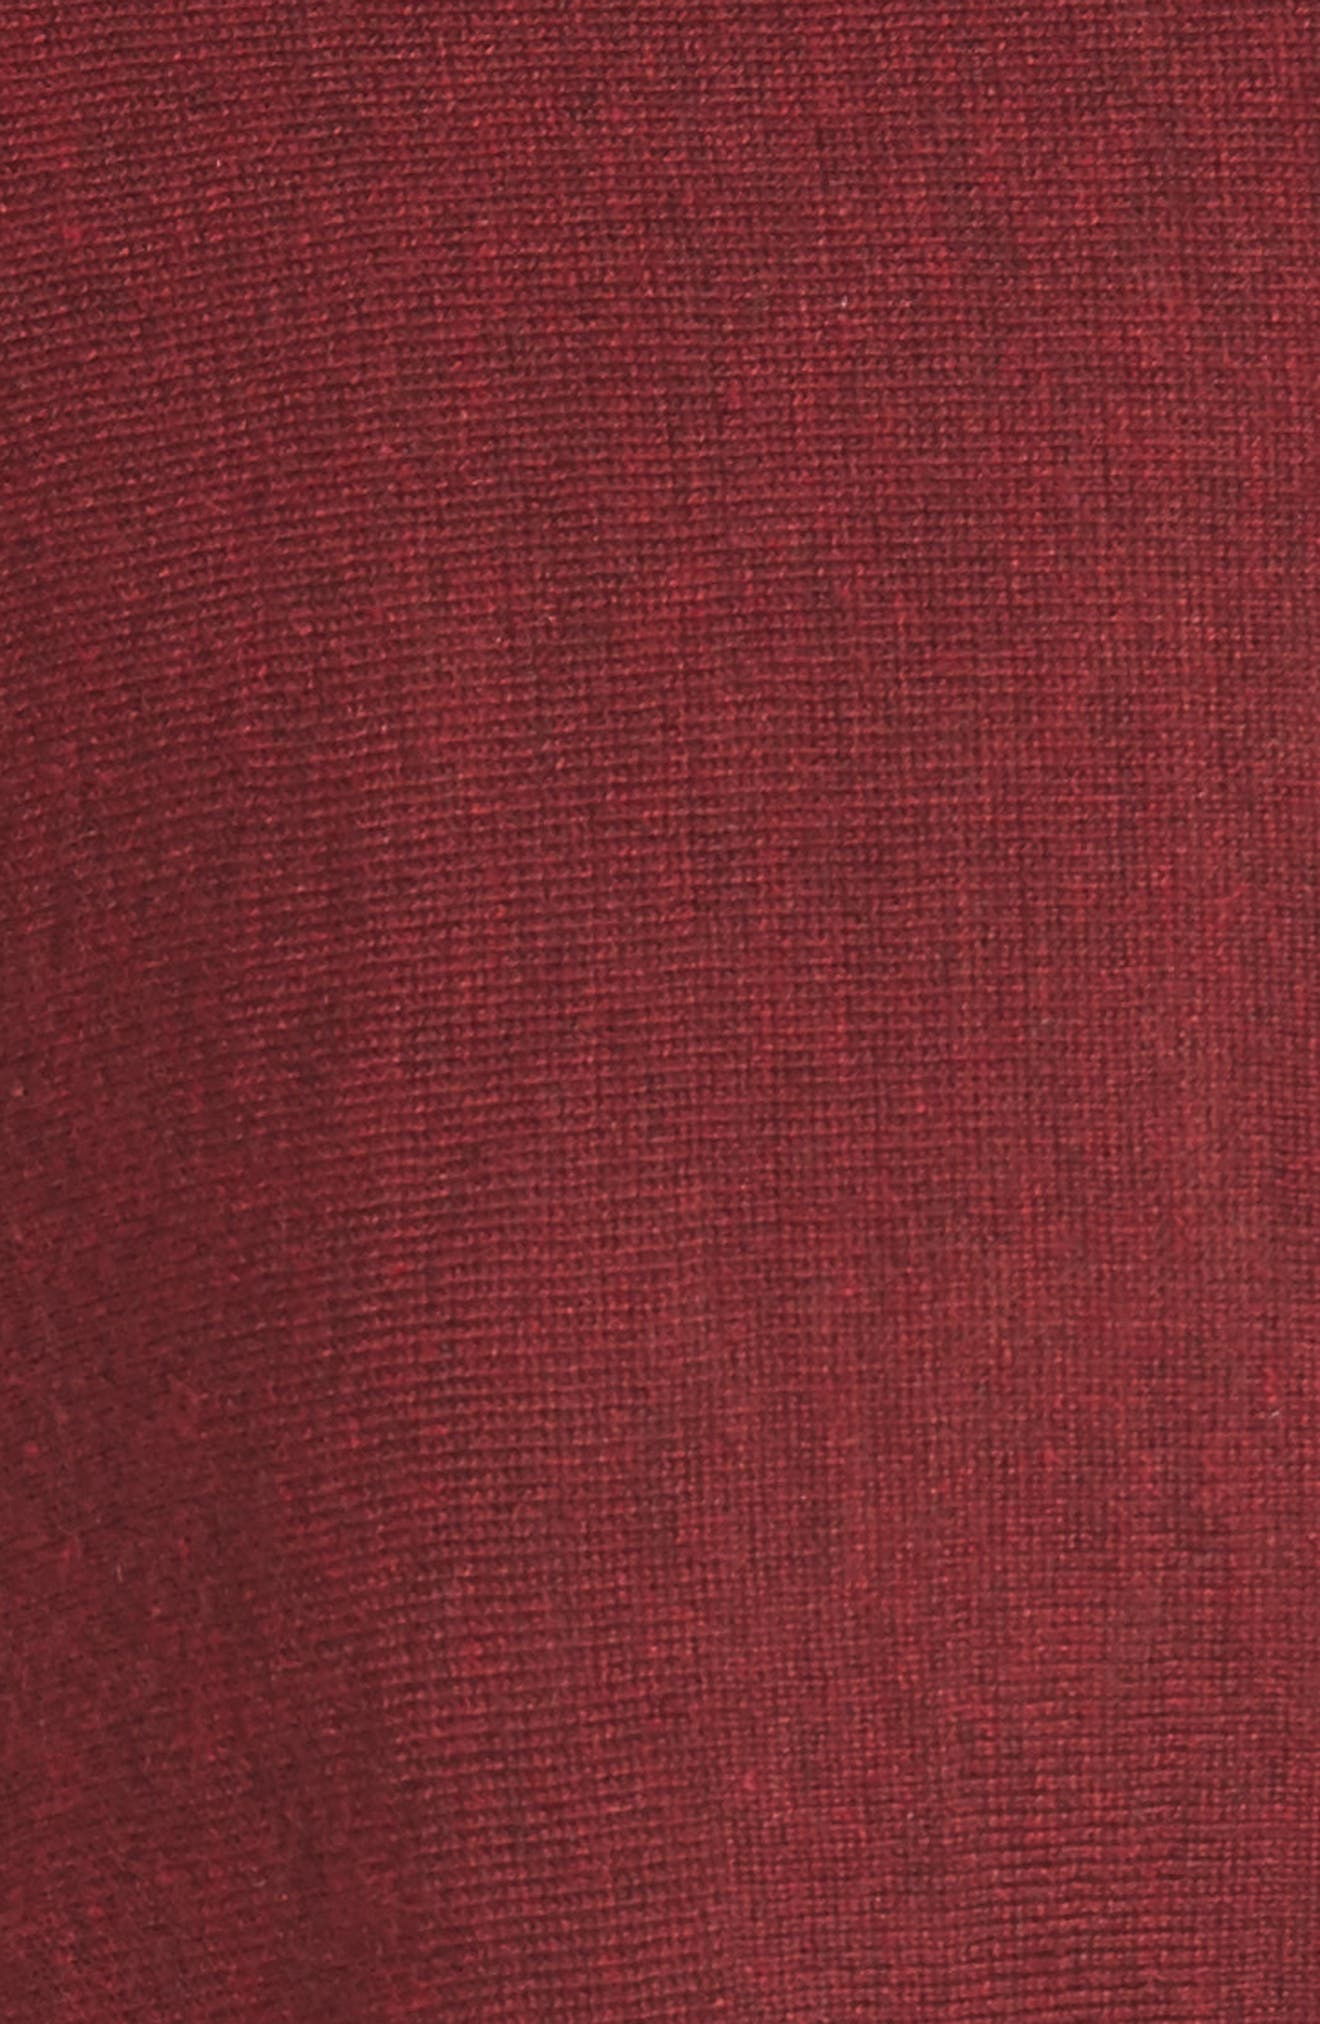 Tencel<sup>®</sup> Lyocell Blend High/Low Sweater,                             Alternate thumbnail 5, color,                             Claret